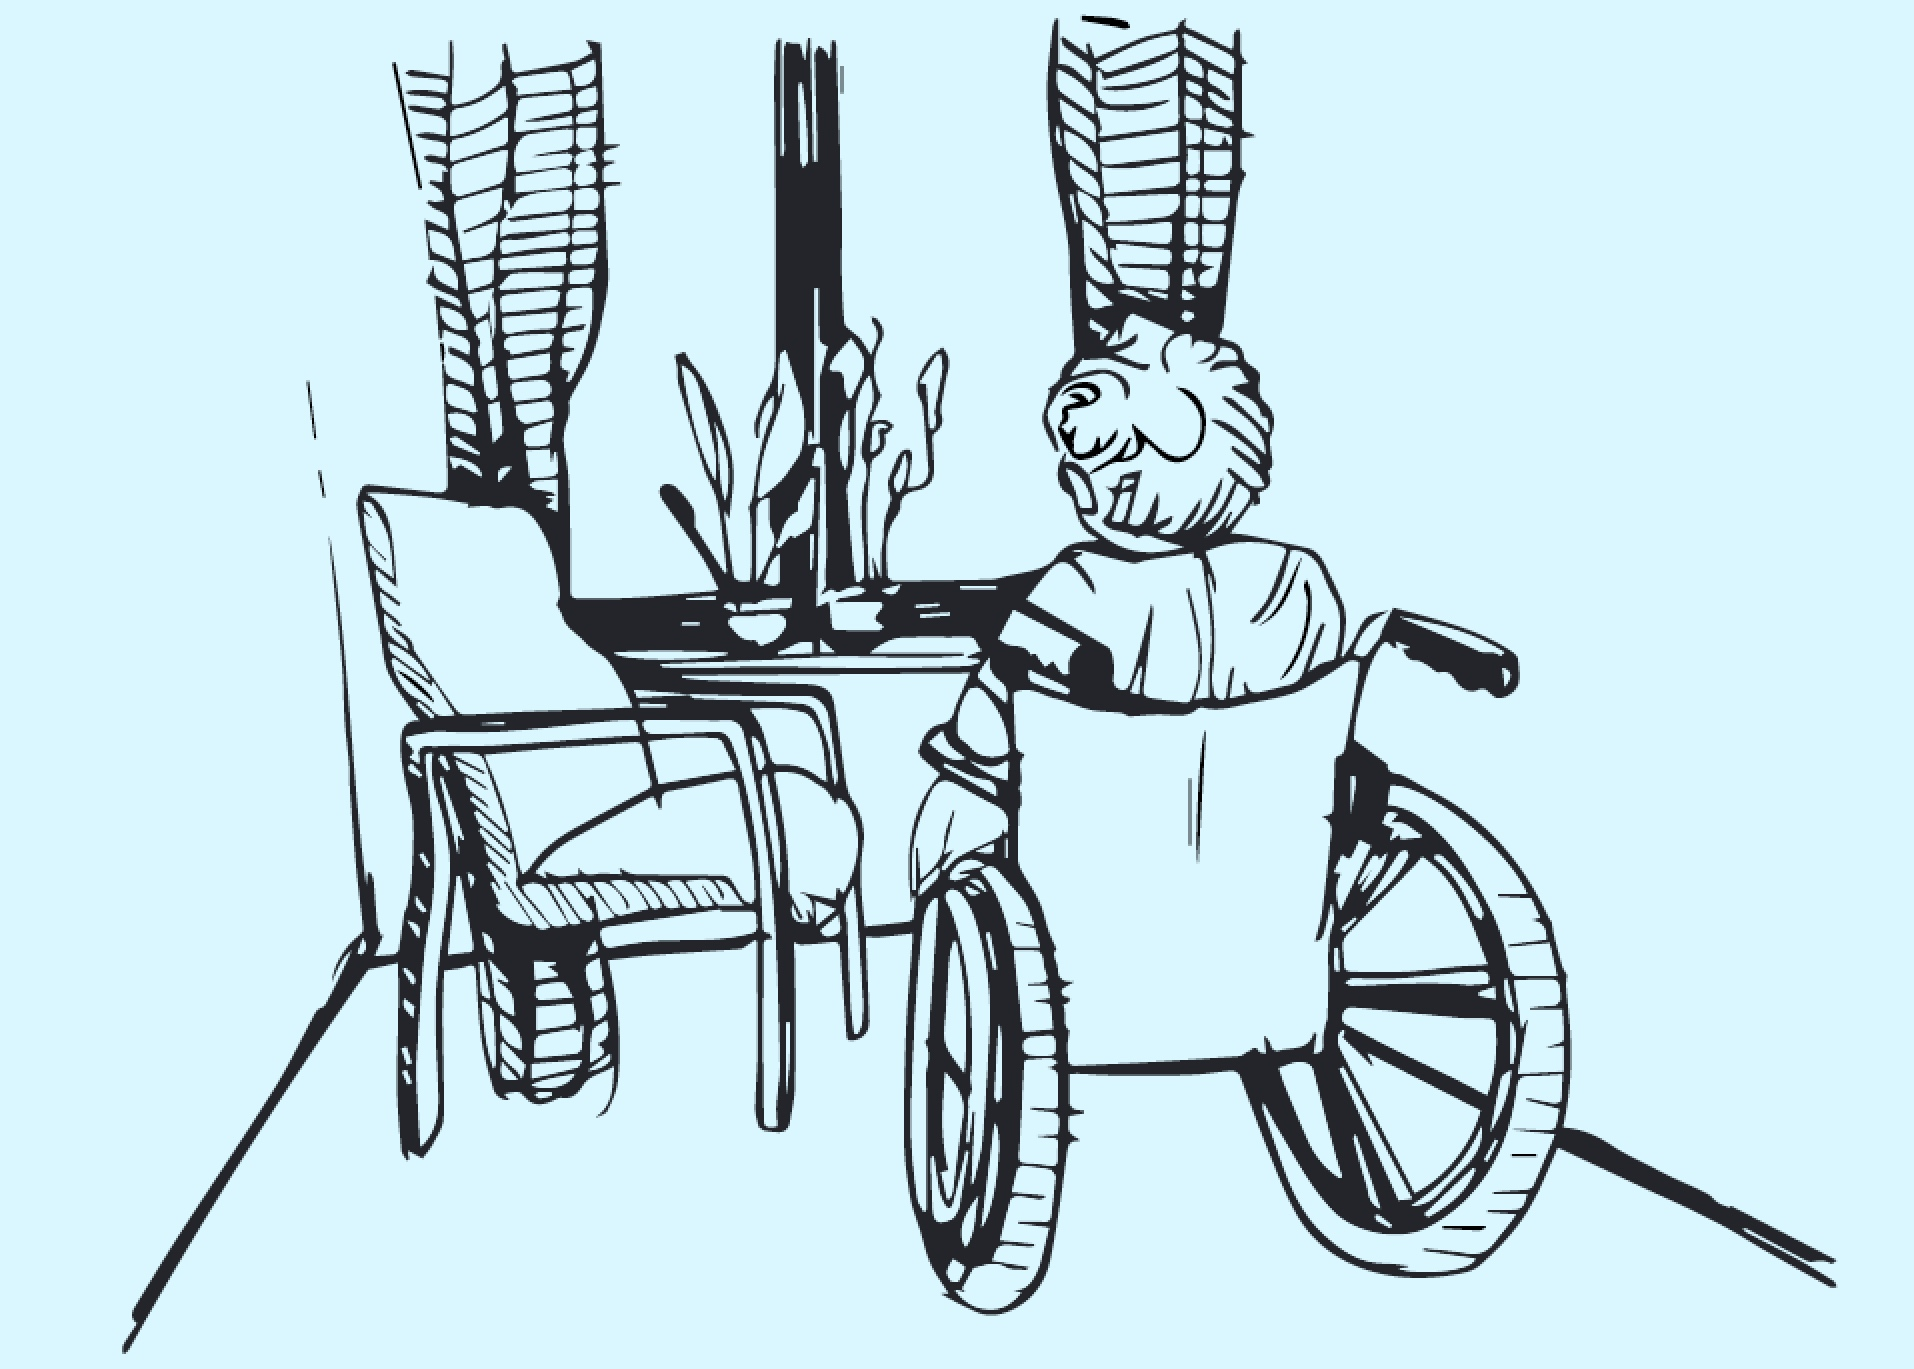 ida's story - Jottings from a wheel chair